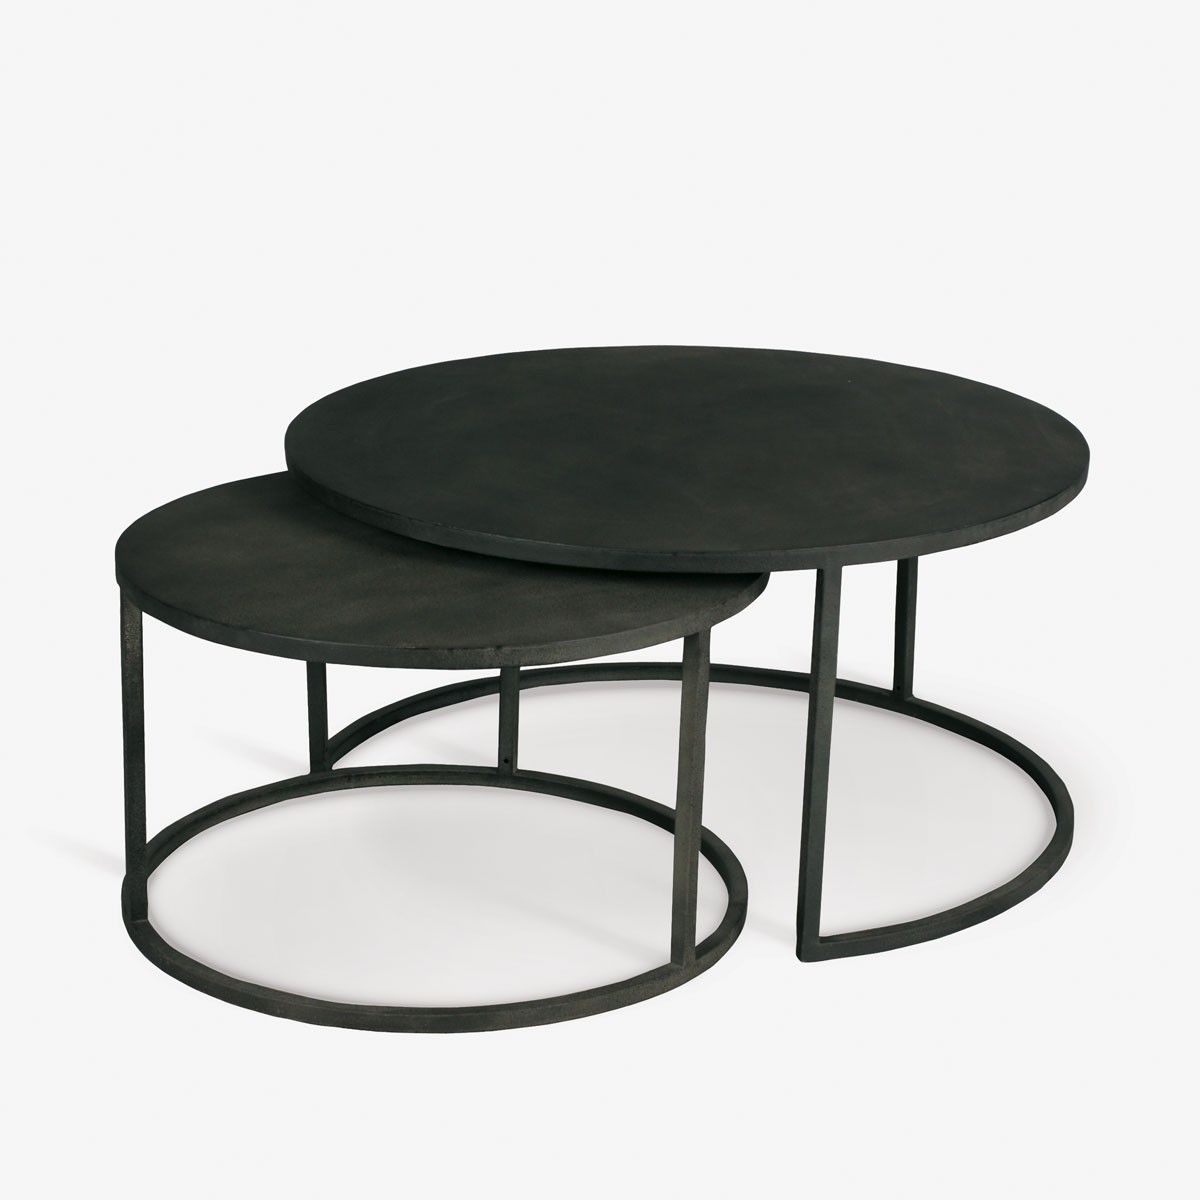 Double Stack Coffee Table Circular Nesting Iron Tables Th2studio with regard to proportions 1200 X 1200